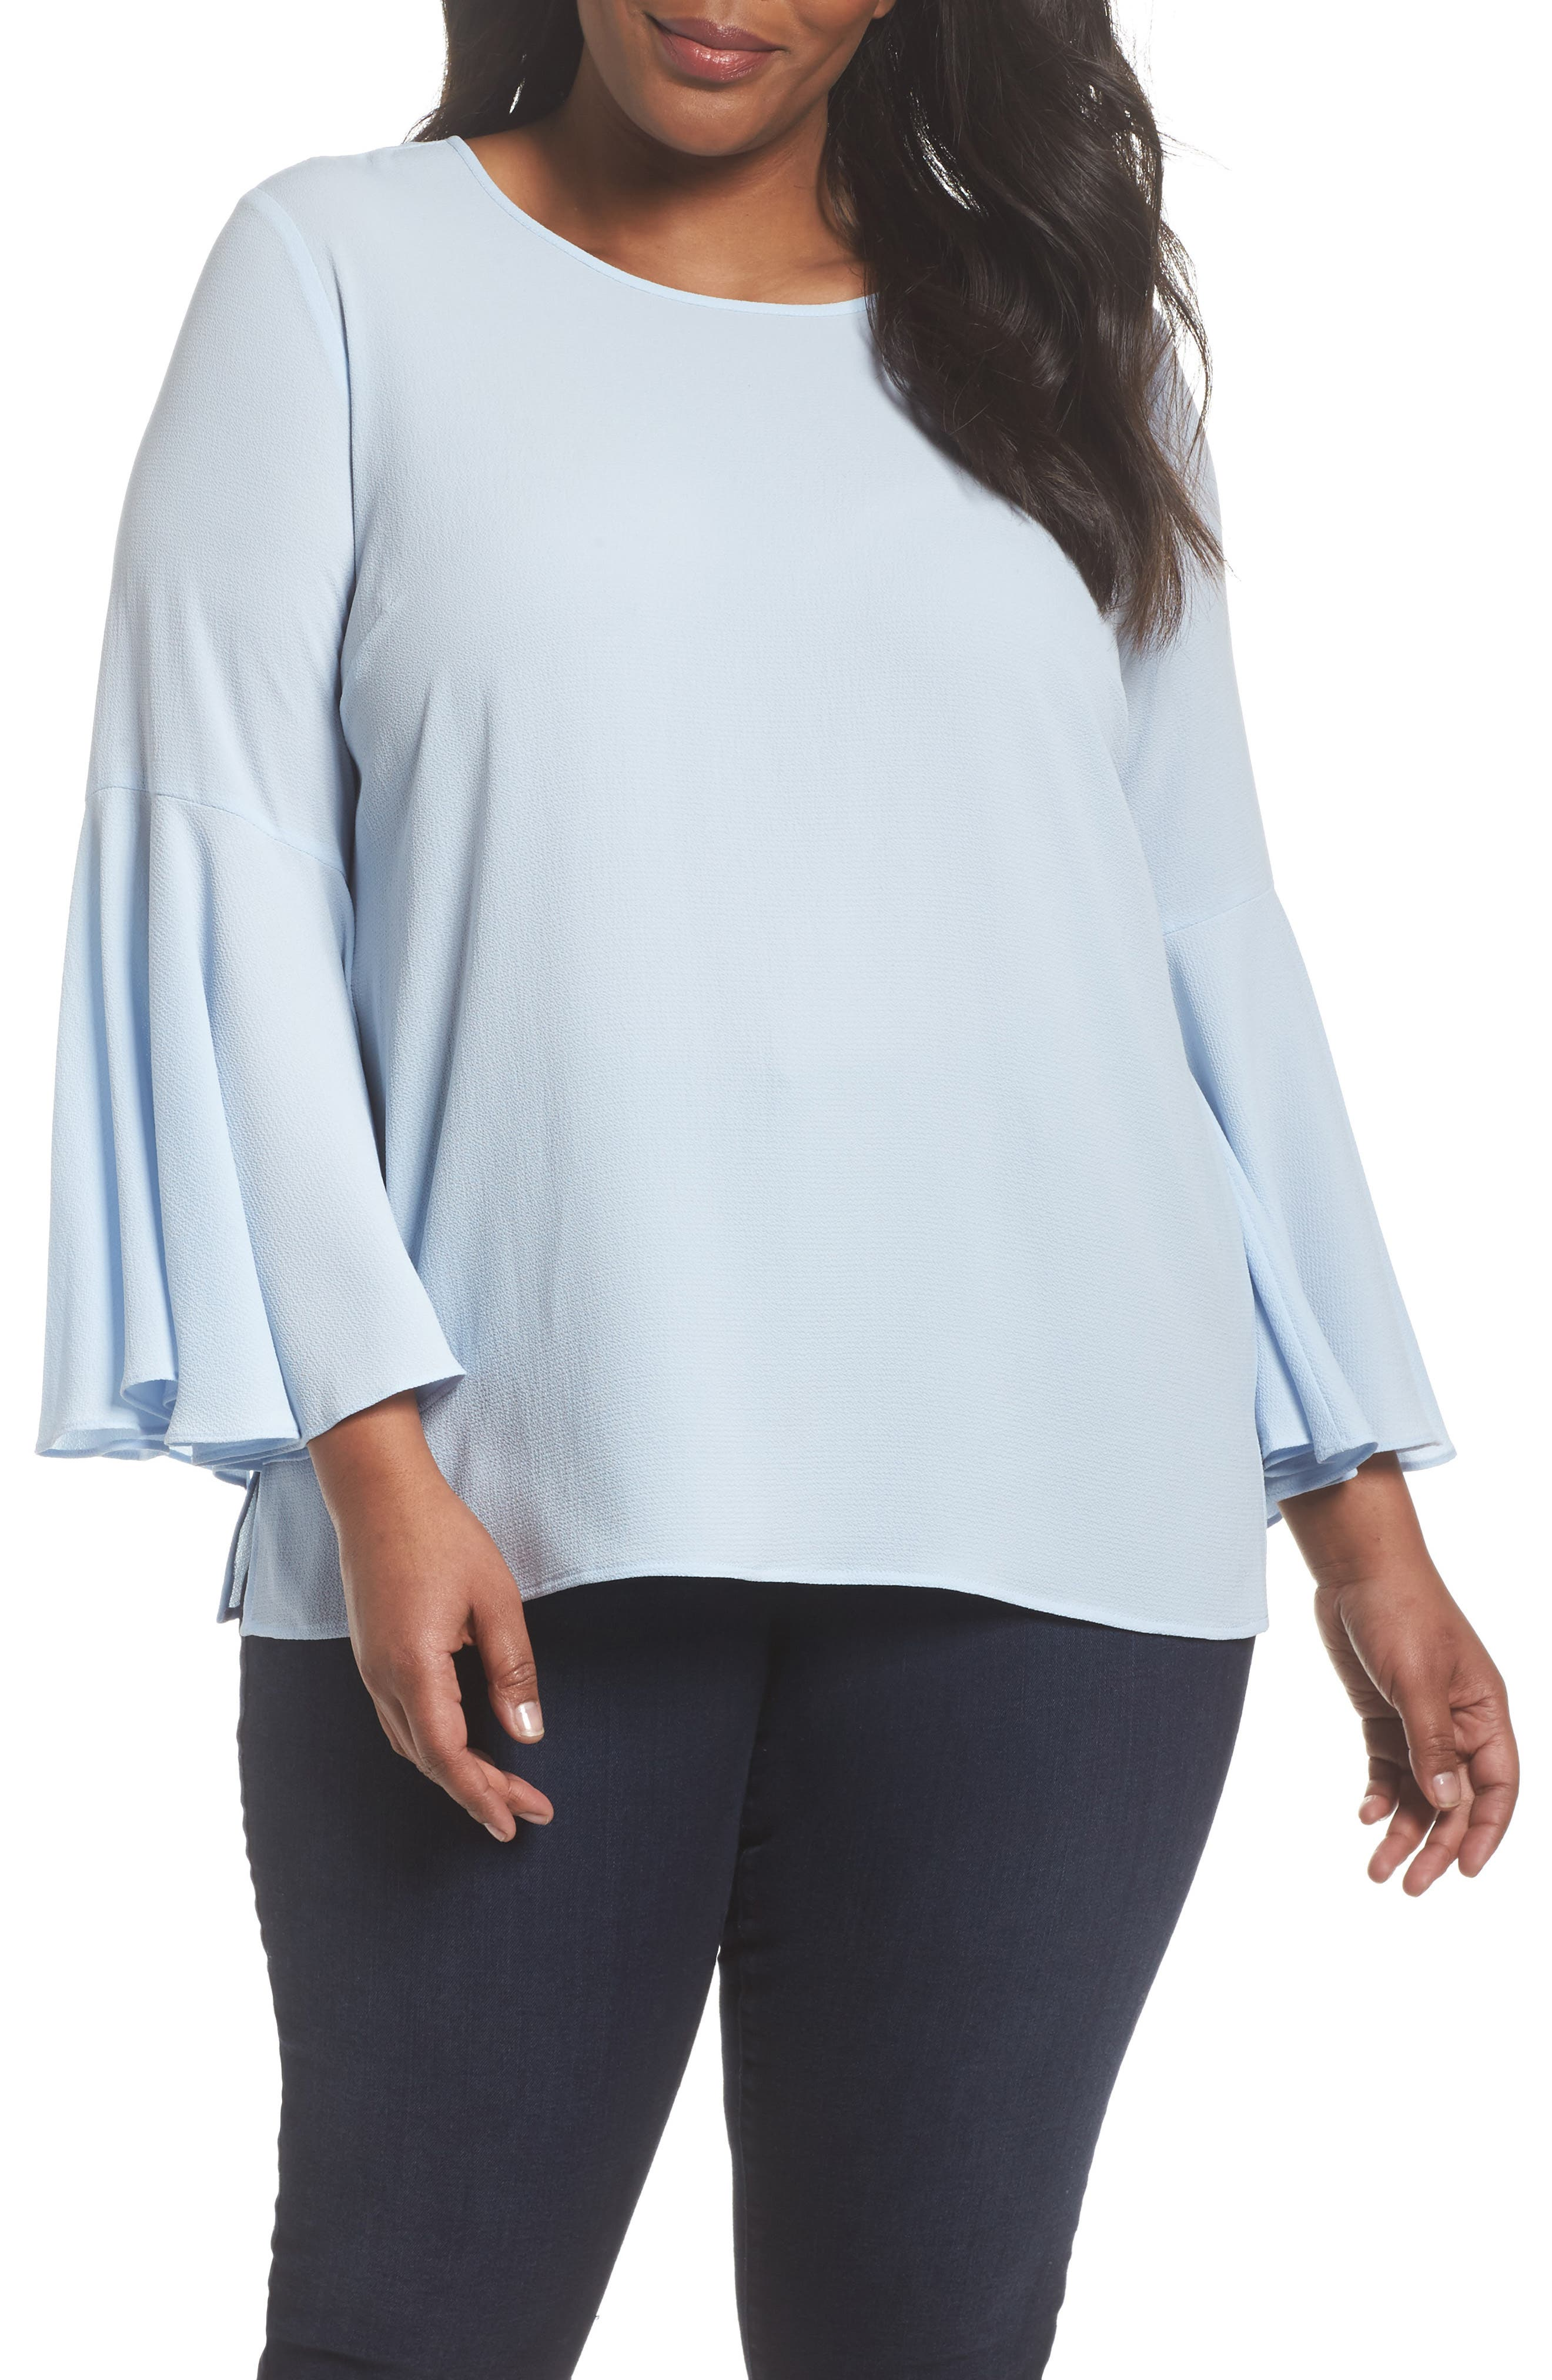 Bell Sleeve Blouse,                             Main thumbnail 1, color,                             LIGHT CAMEO BLUE